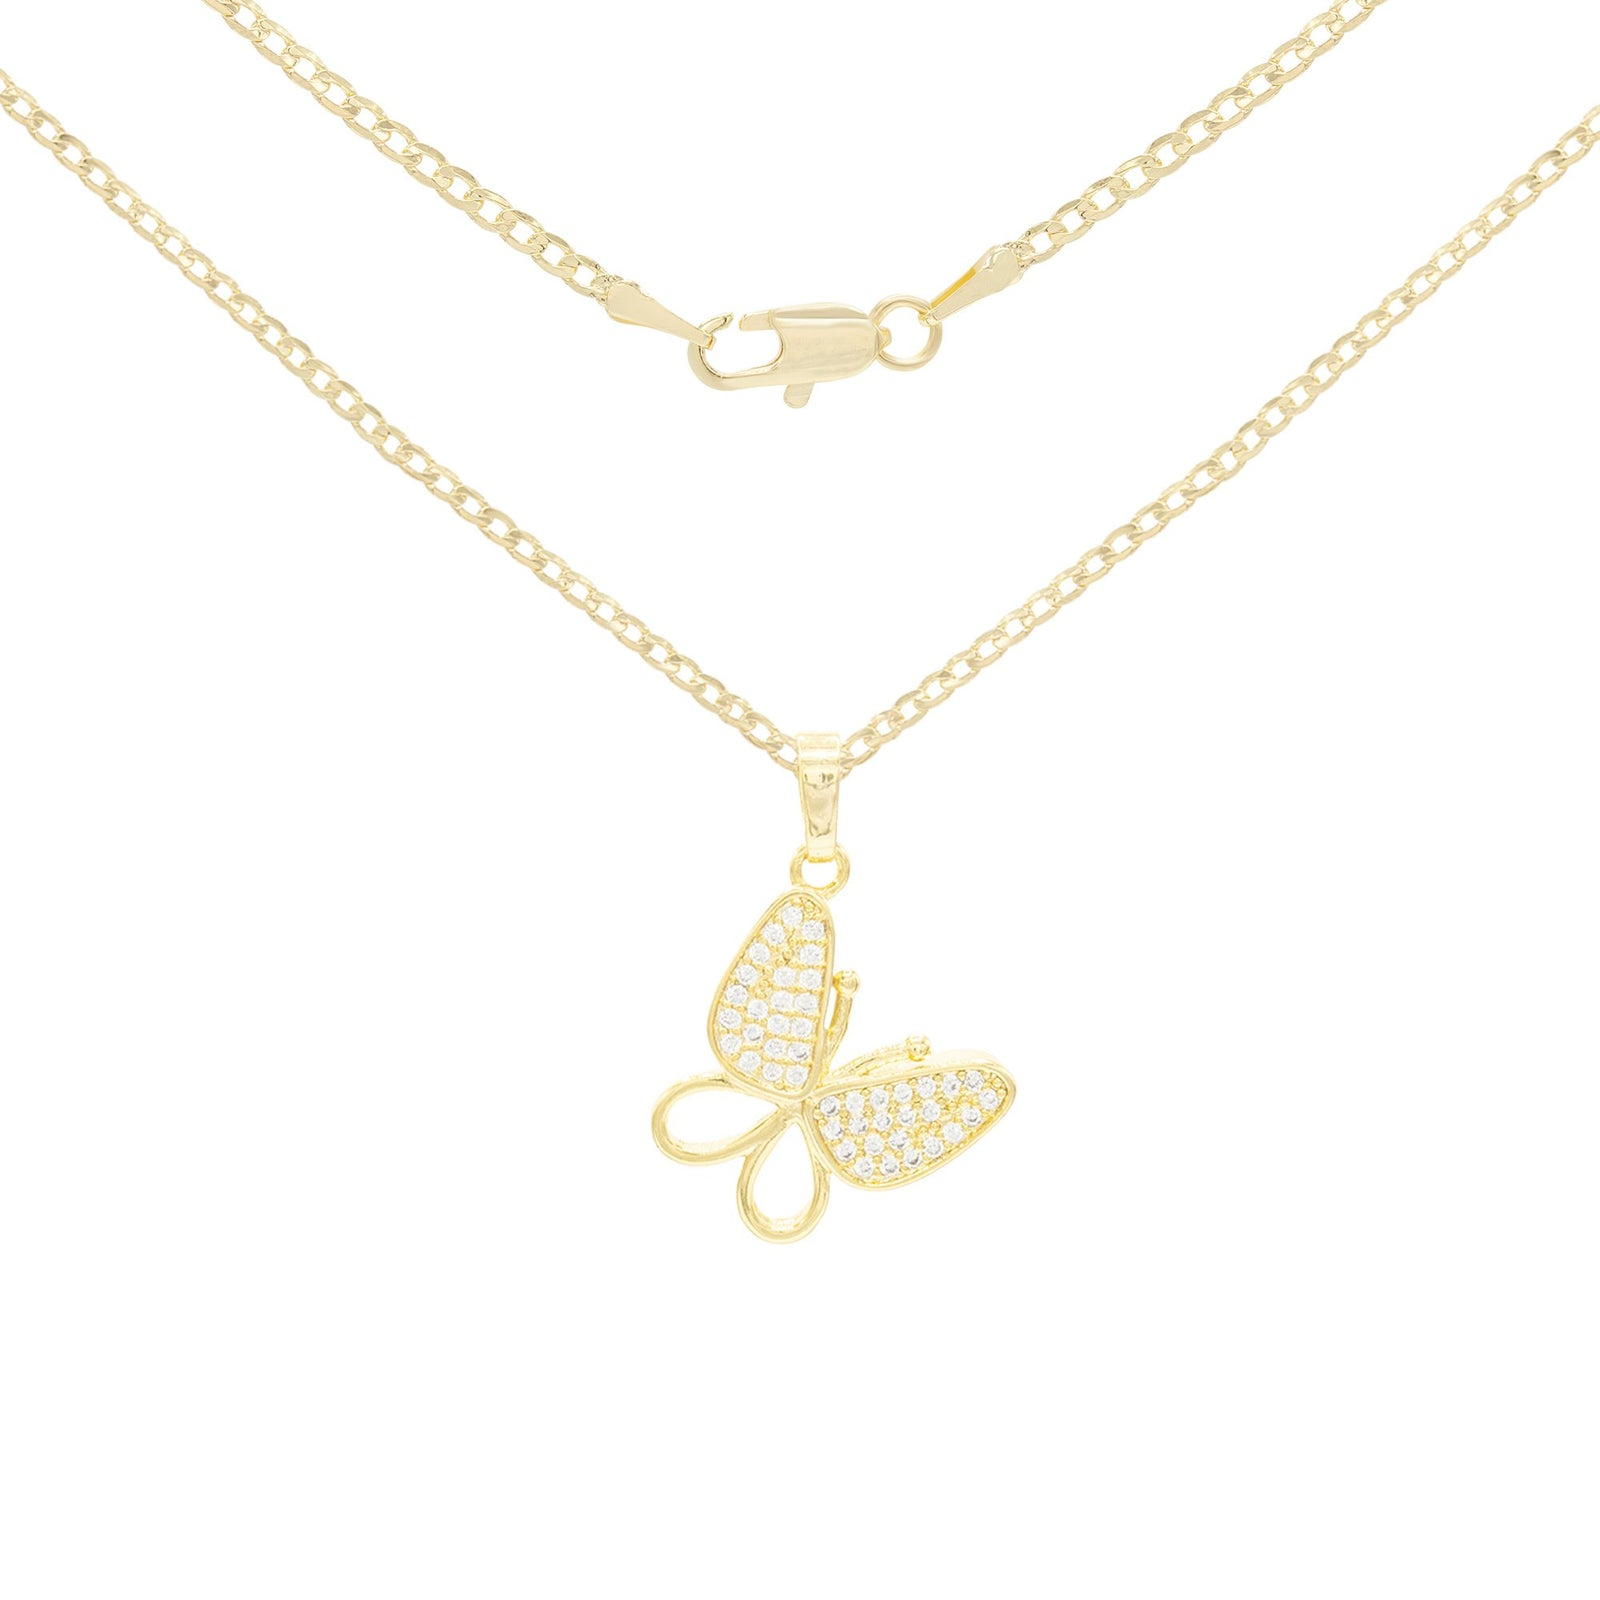 CZ Butterfly Cubic Zirconia Pendant With Necklace Set 14K Gold Filled